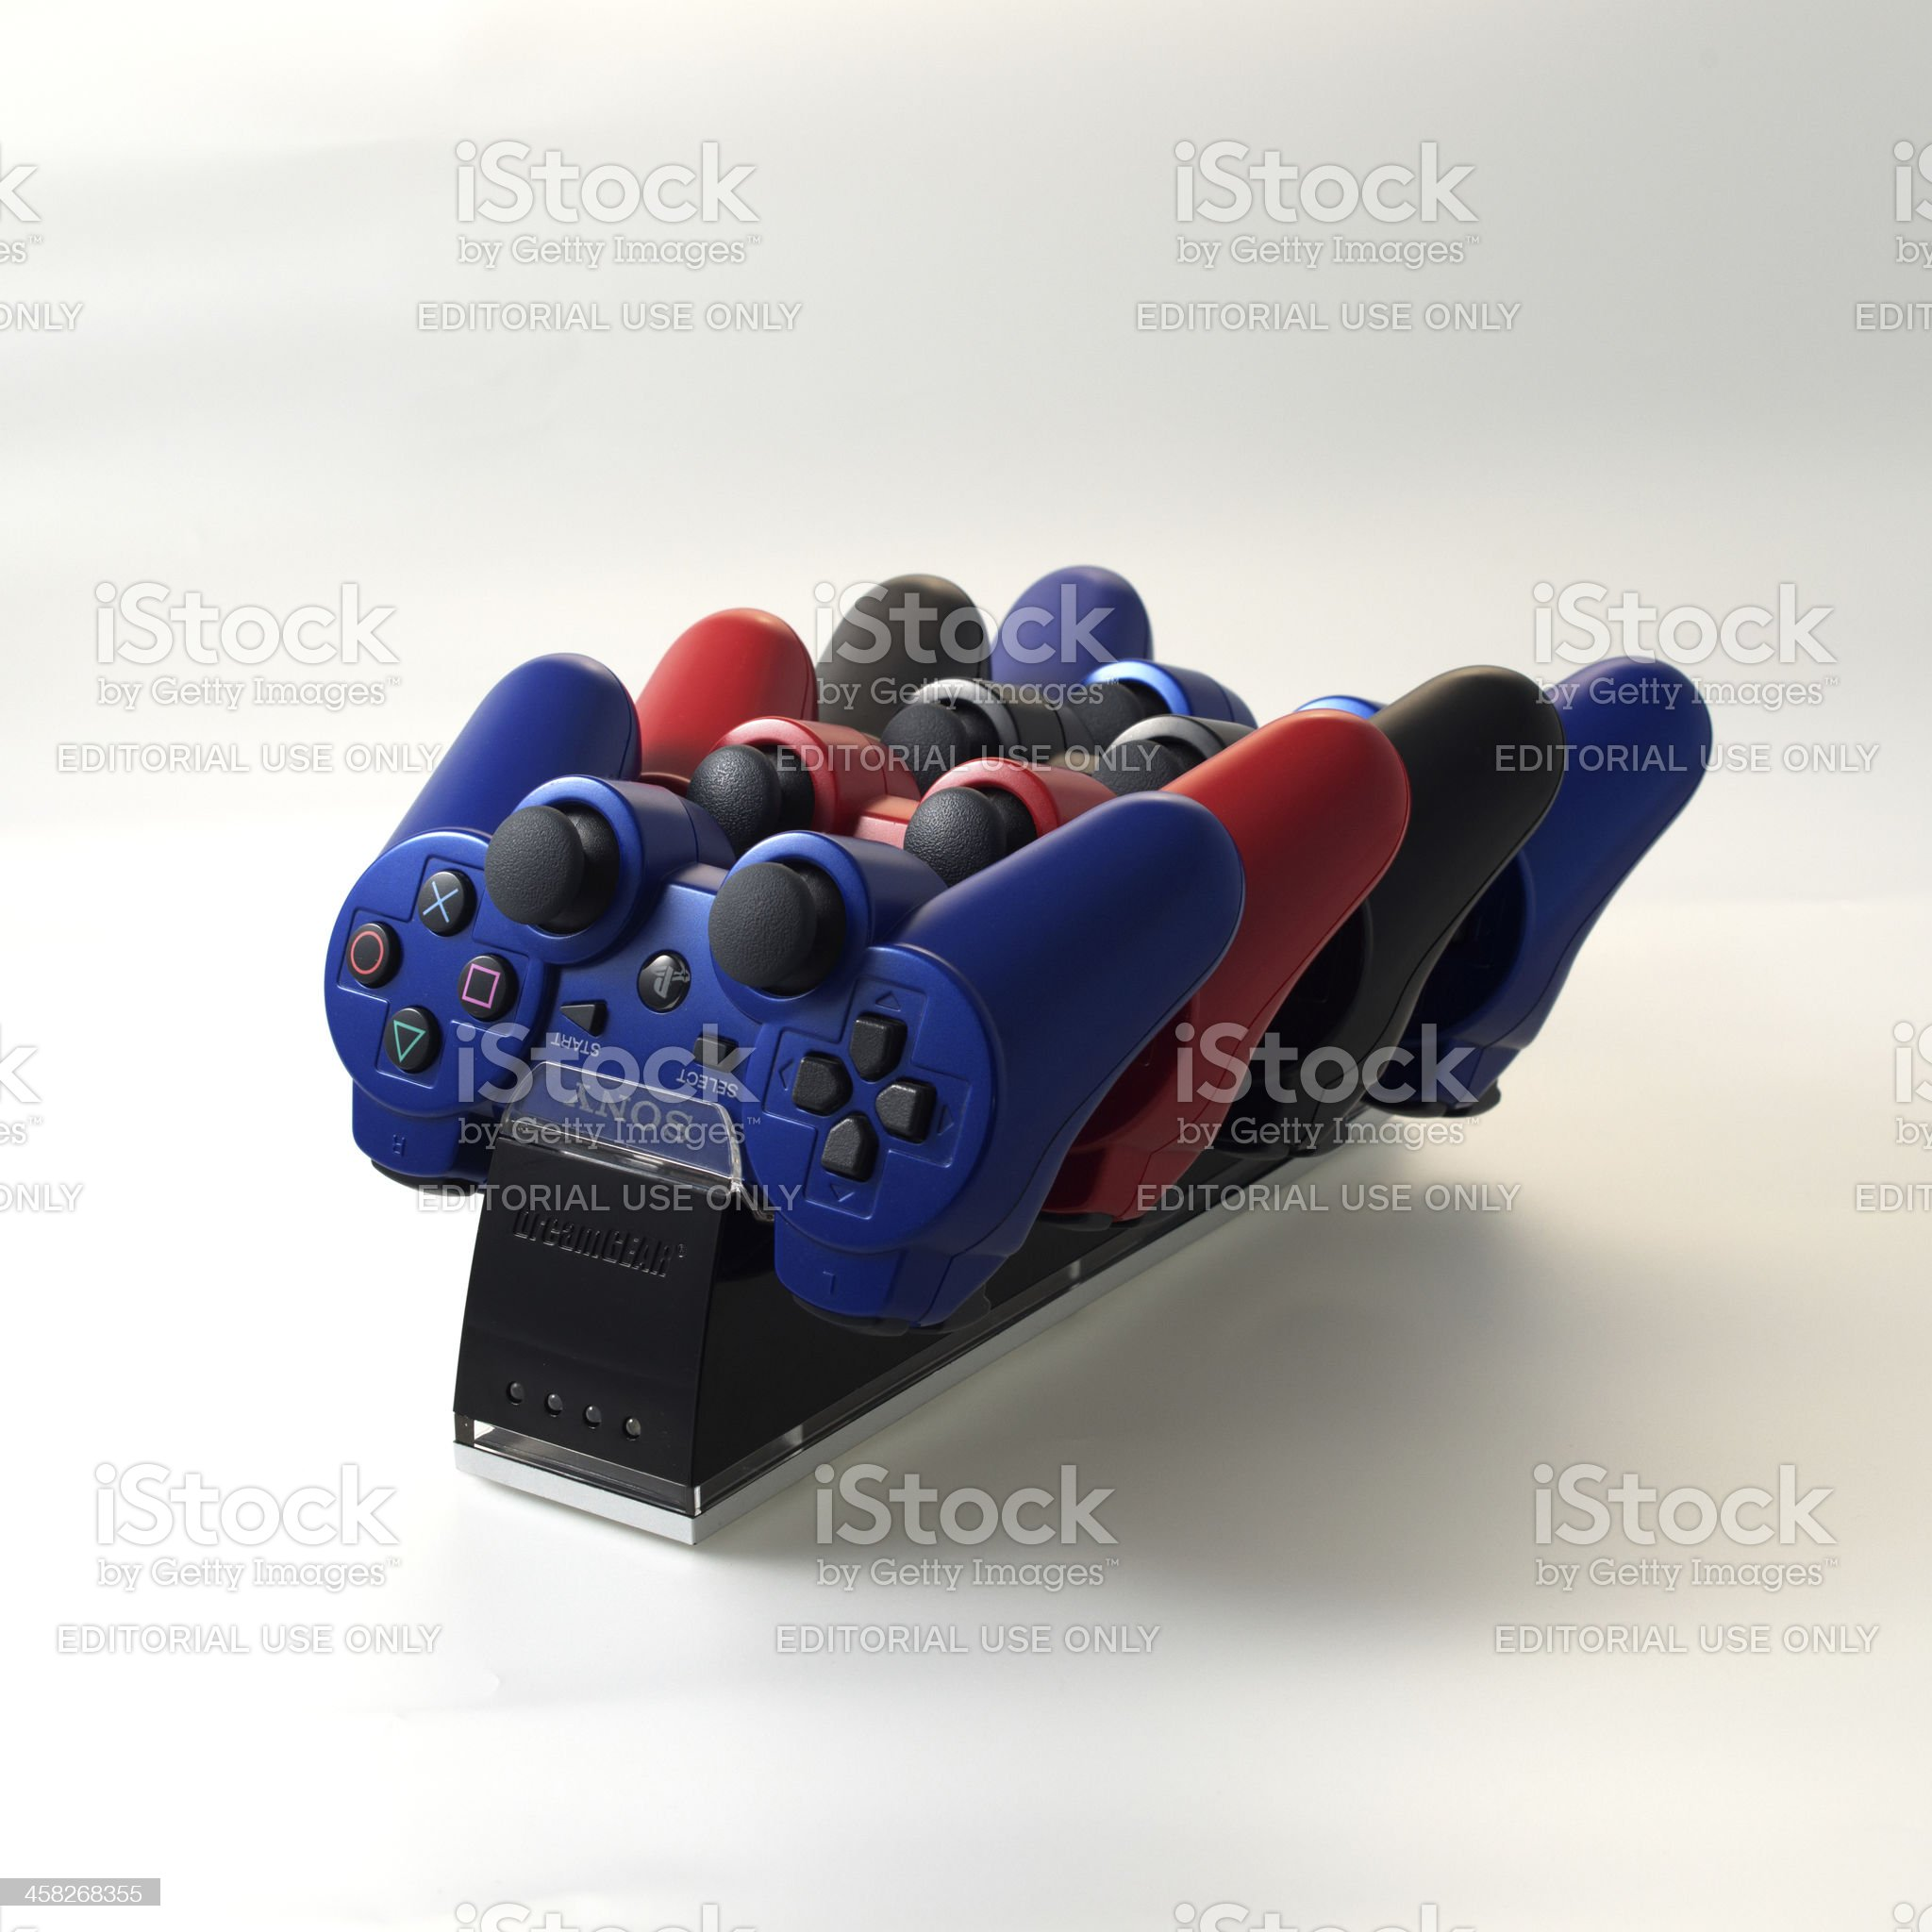 four PS3 controllers royalty-free stock photo